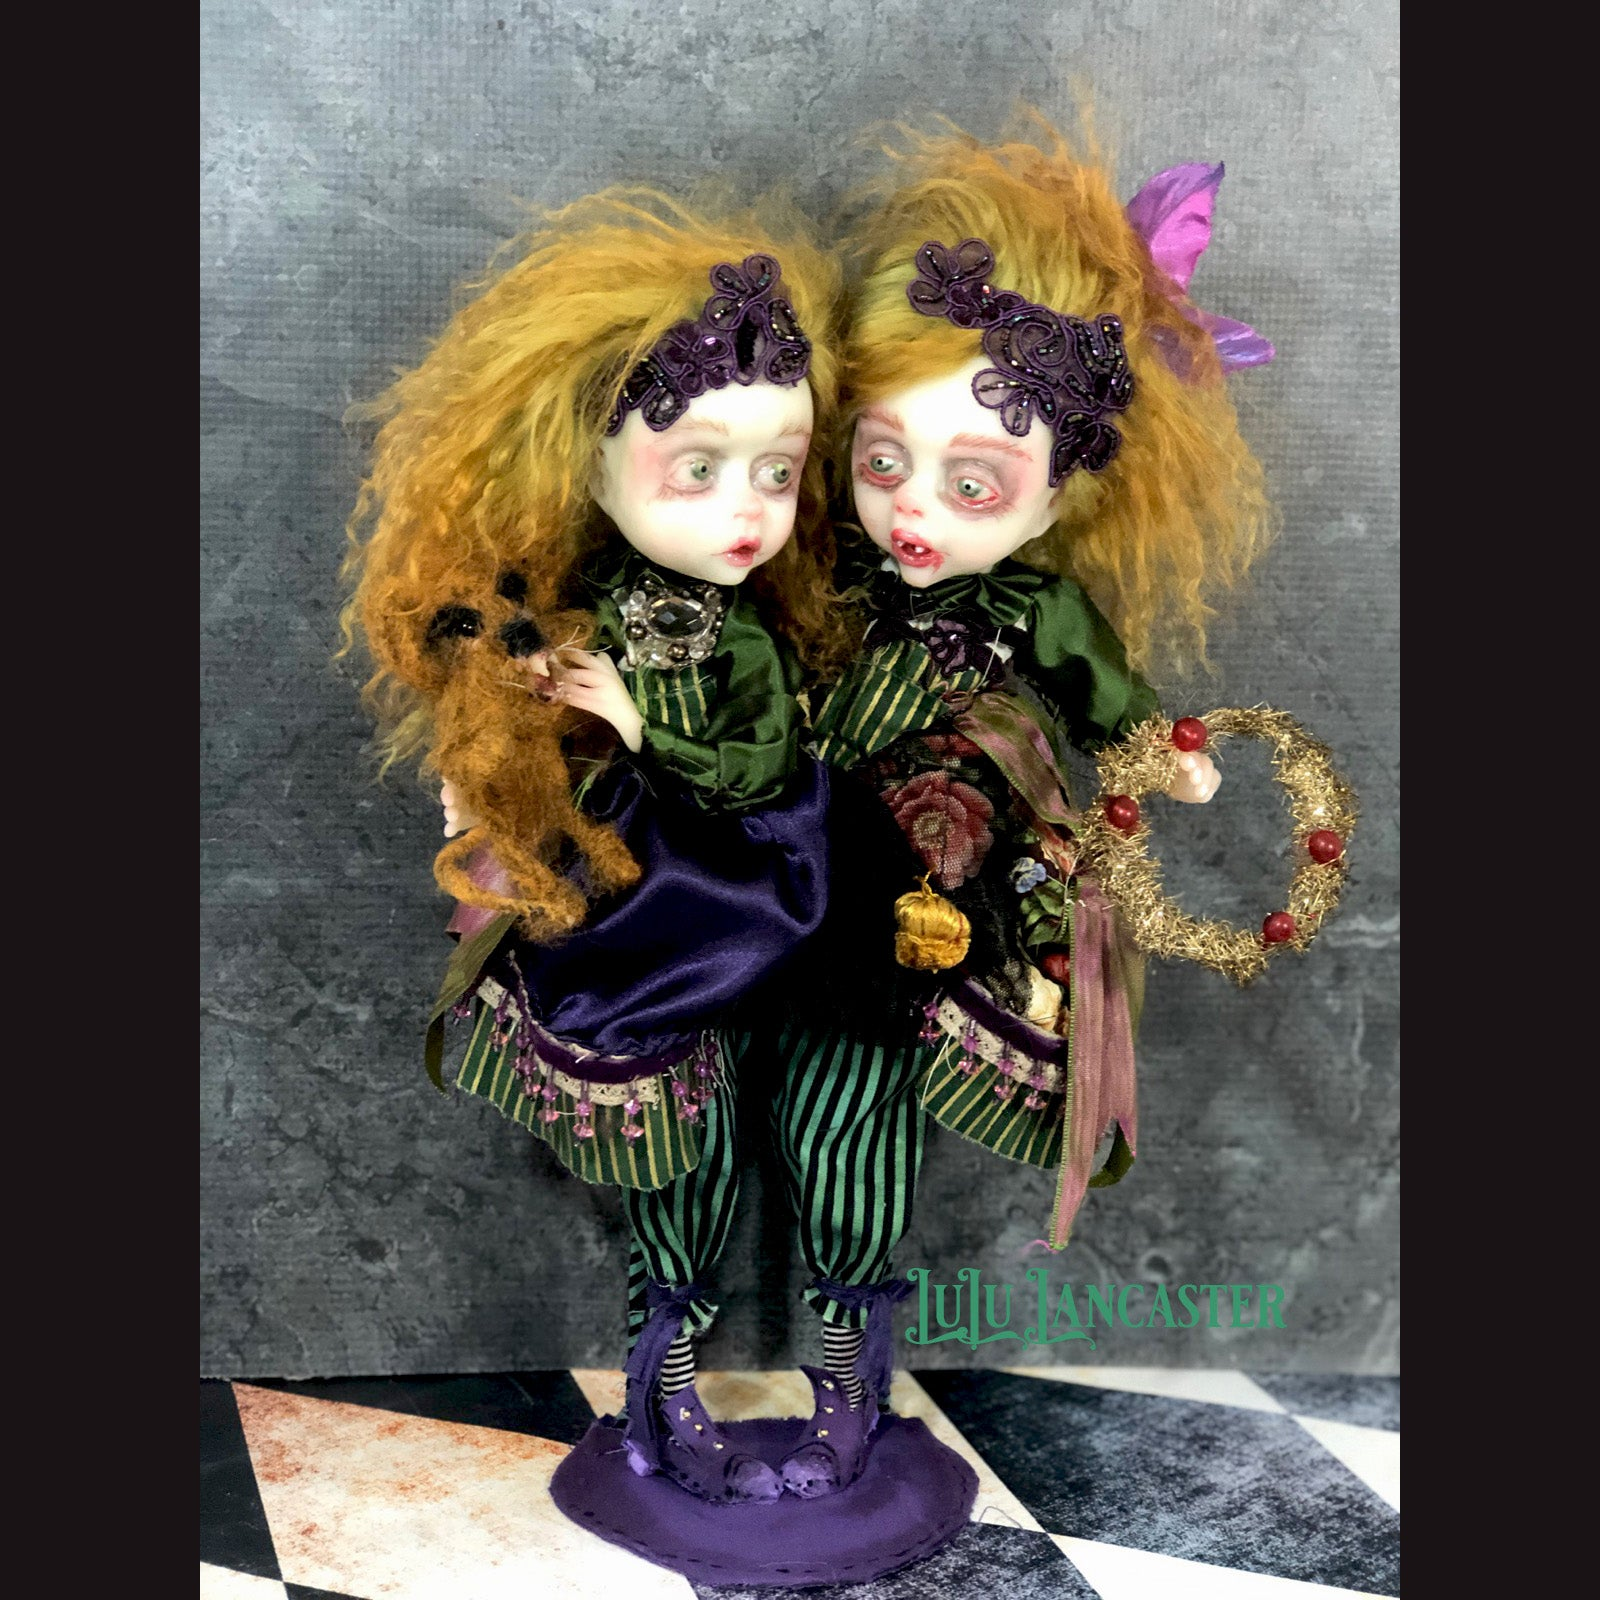 Jewel and Gem Conjoined Winter Christmas vampire twin OOAK Art Doll LuLu Lancaster